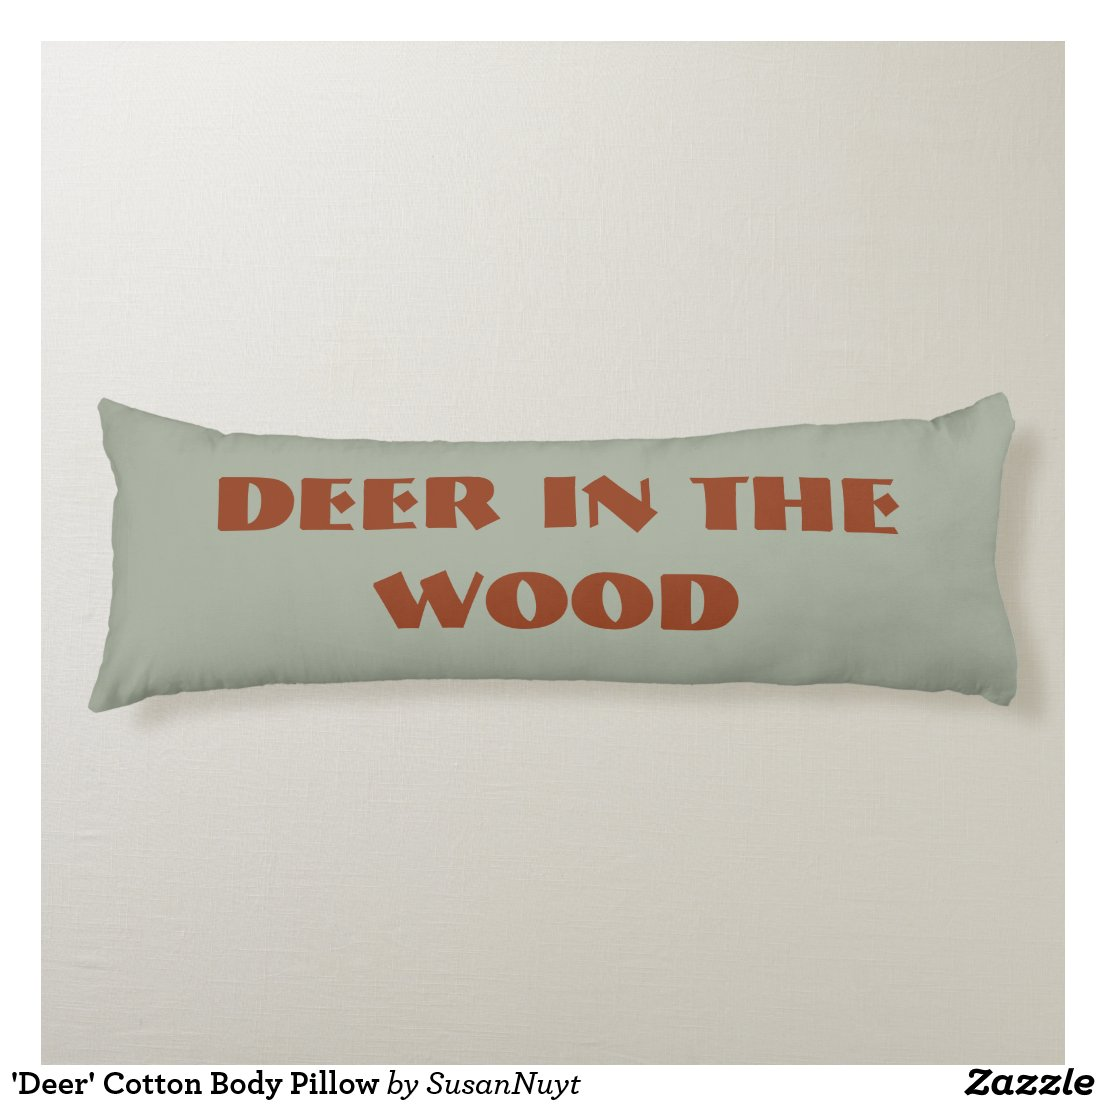 'Deer' Cotton Body Pillow